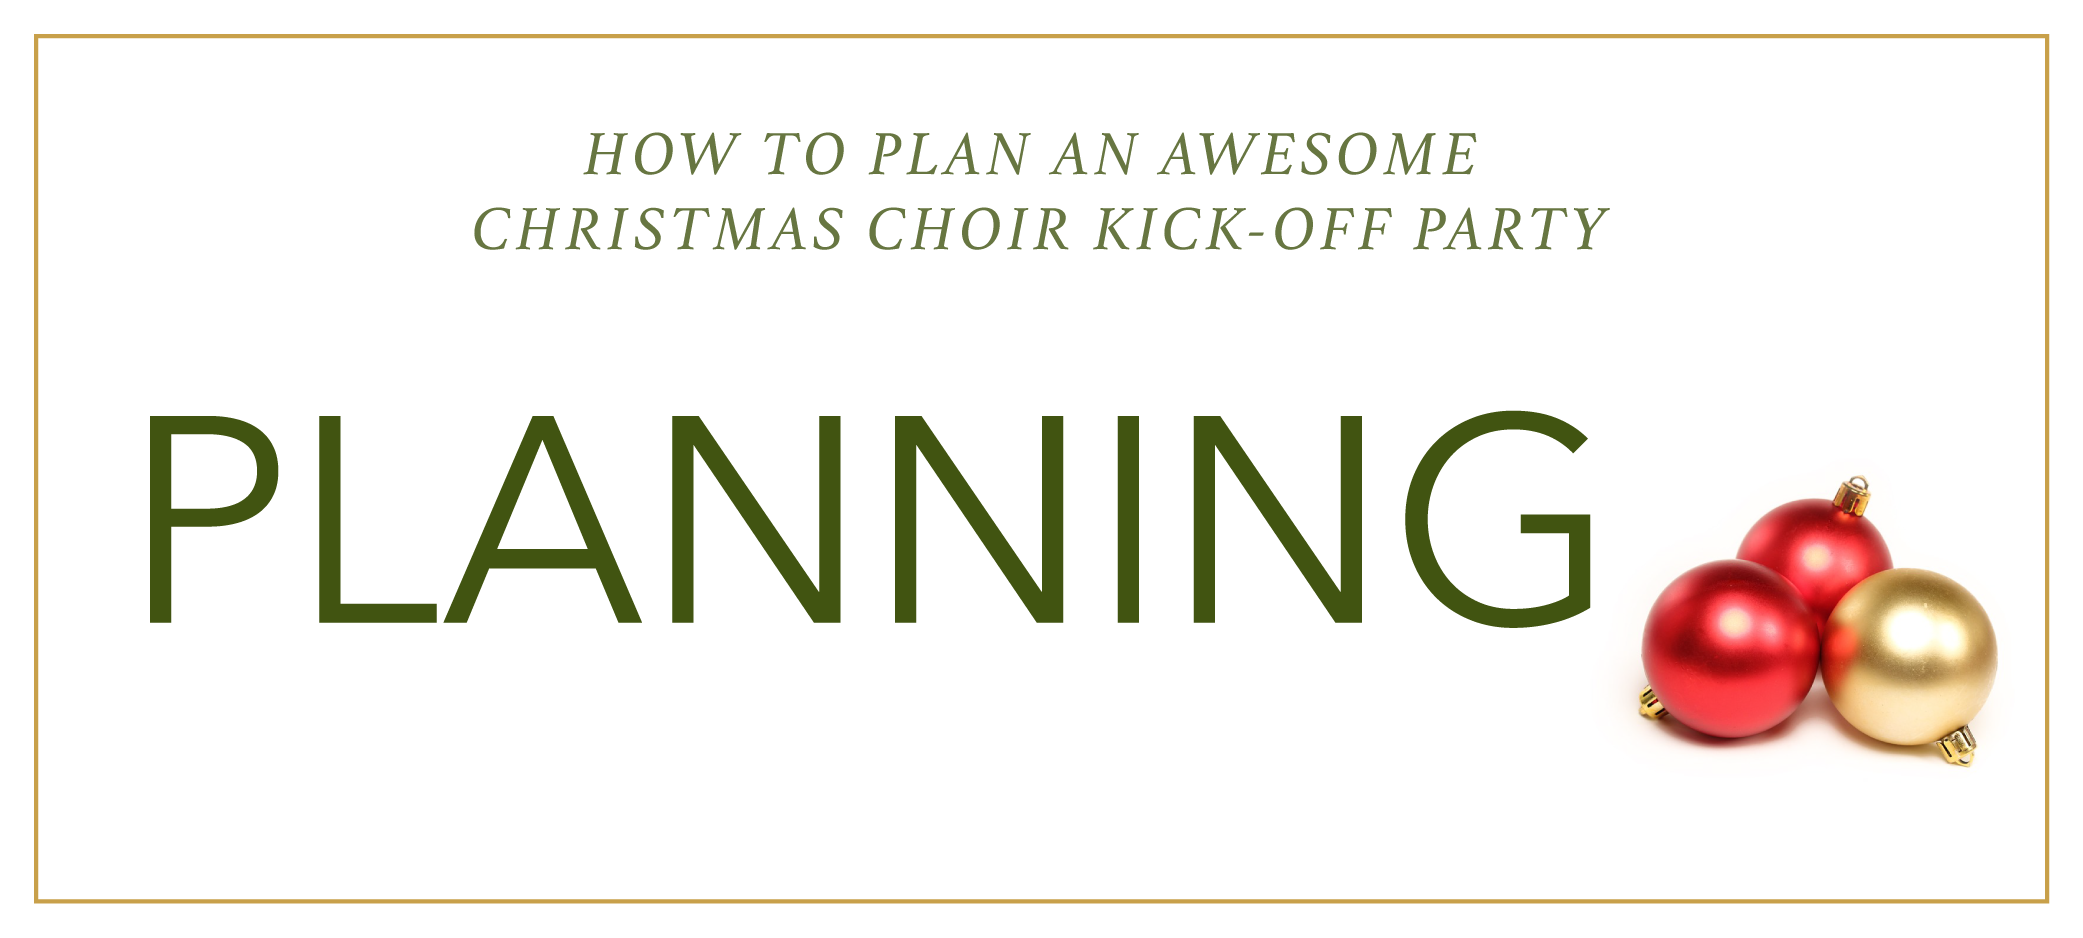 How to Plan an Awesome Christmas Choir Kick-Off Party - lots of ideas for planning, activities, and Christmas-themed games | @ashleydanyew